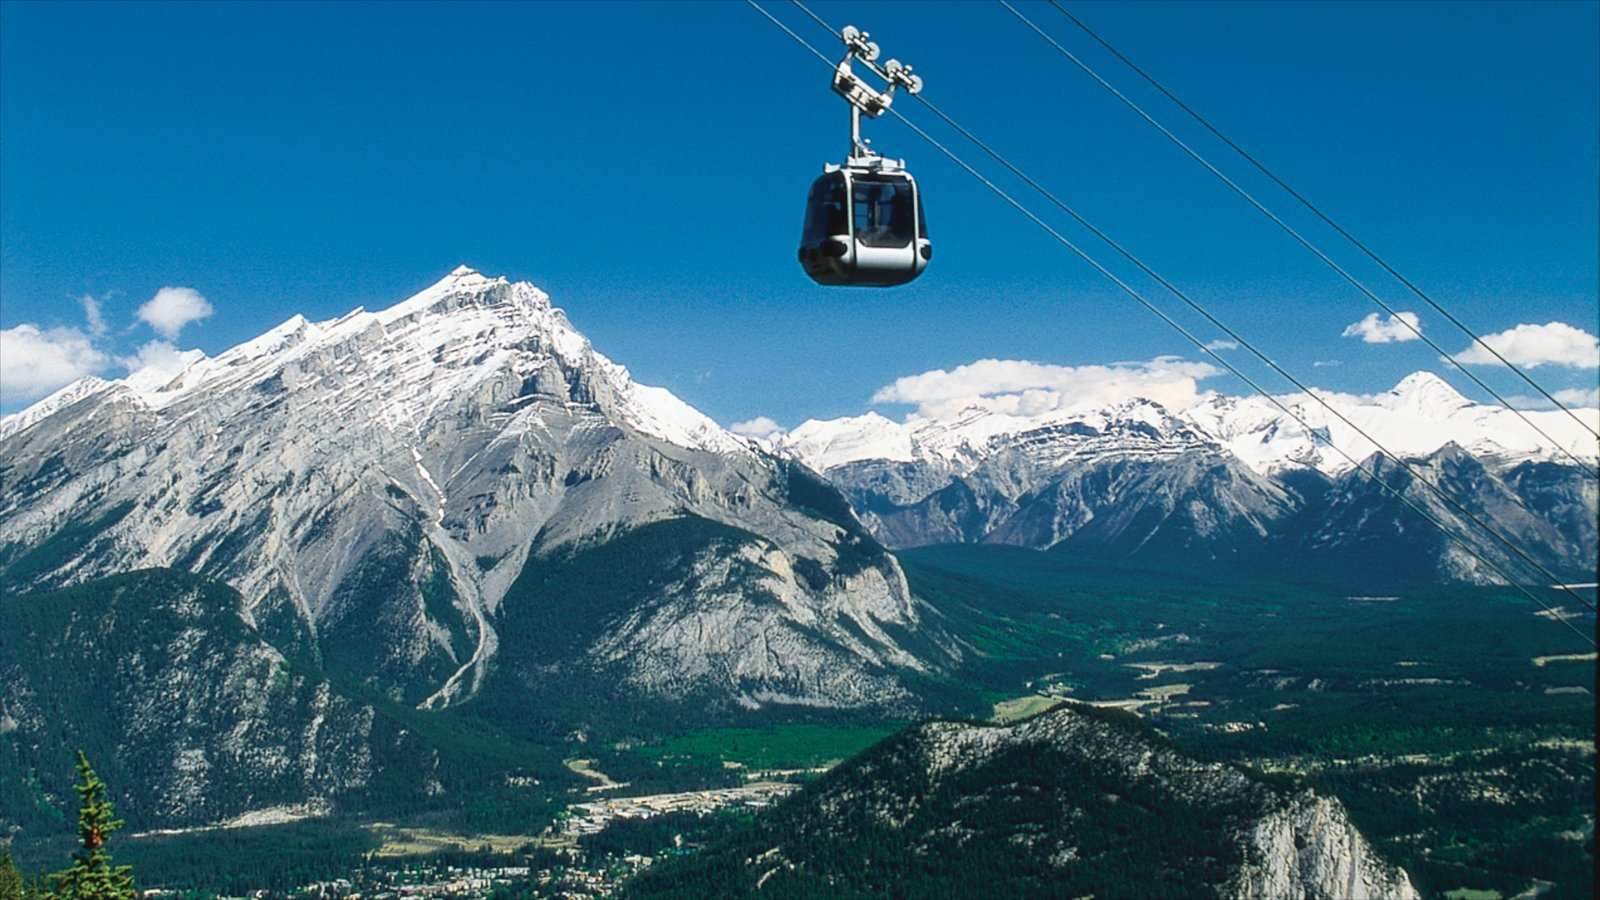 Banff Gondola showing mountains, snow and a gondola